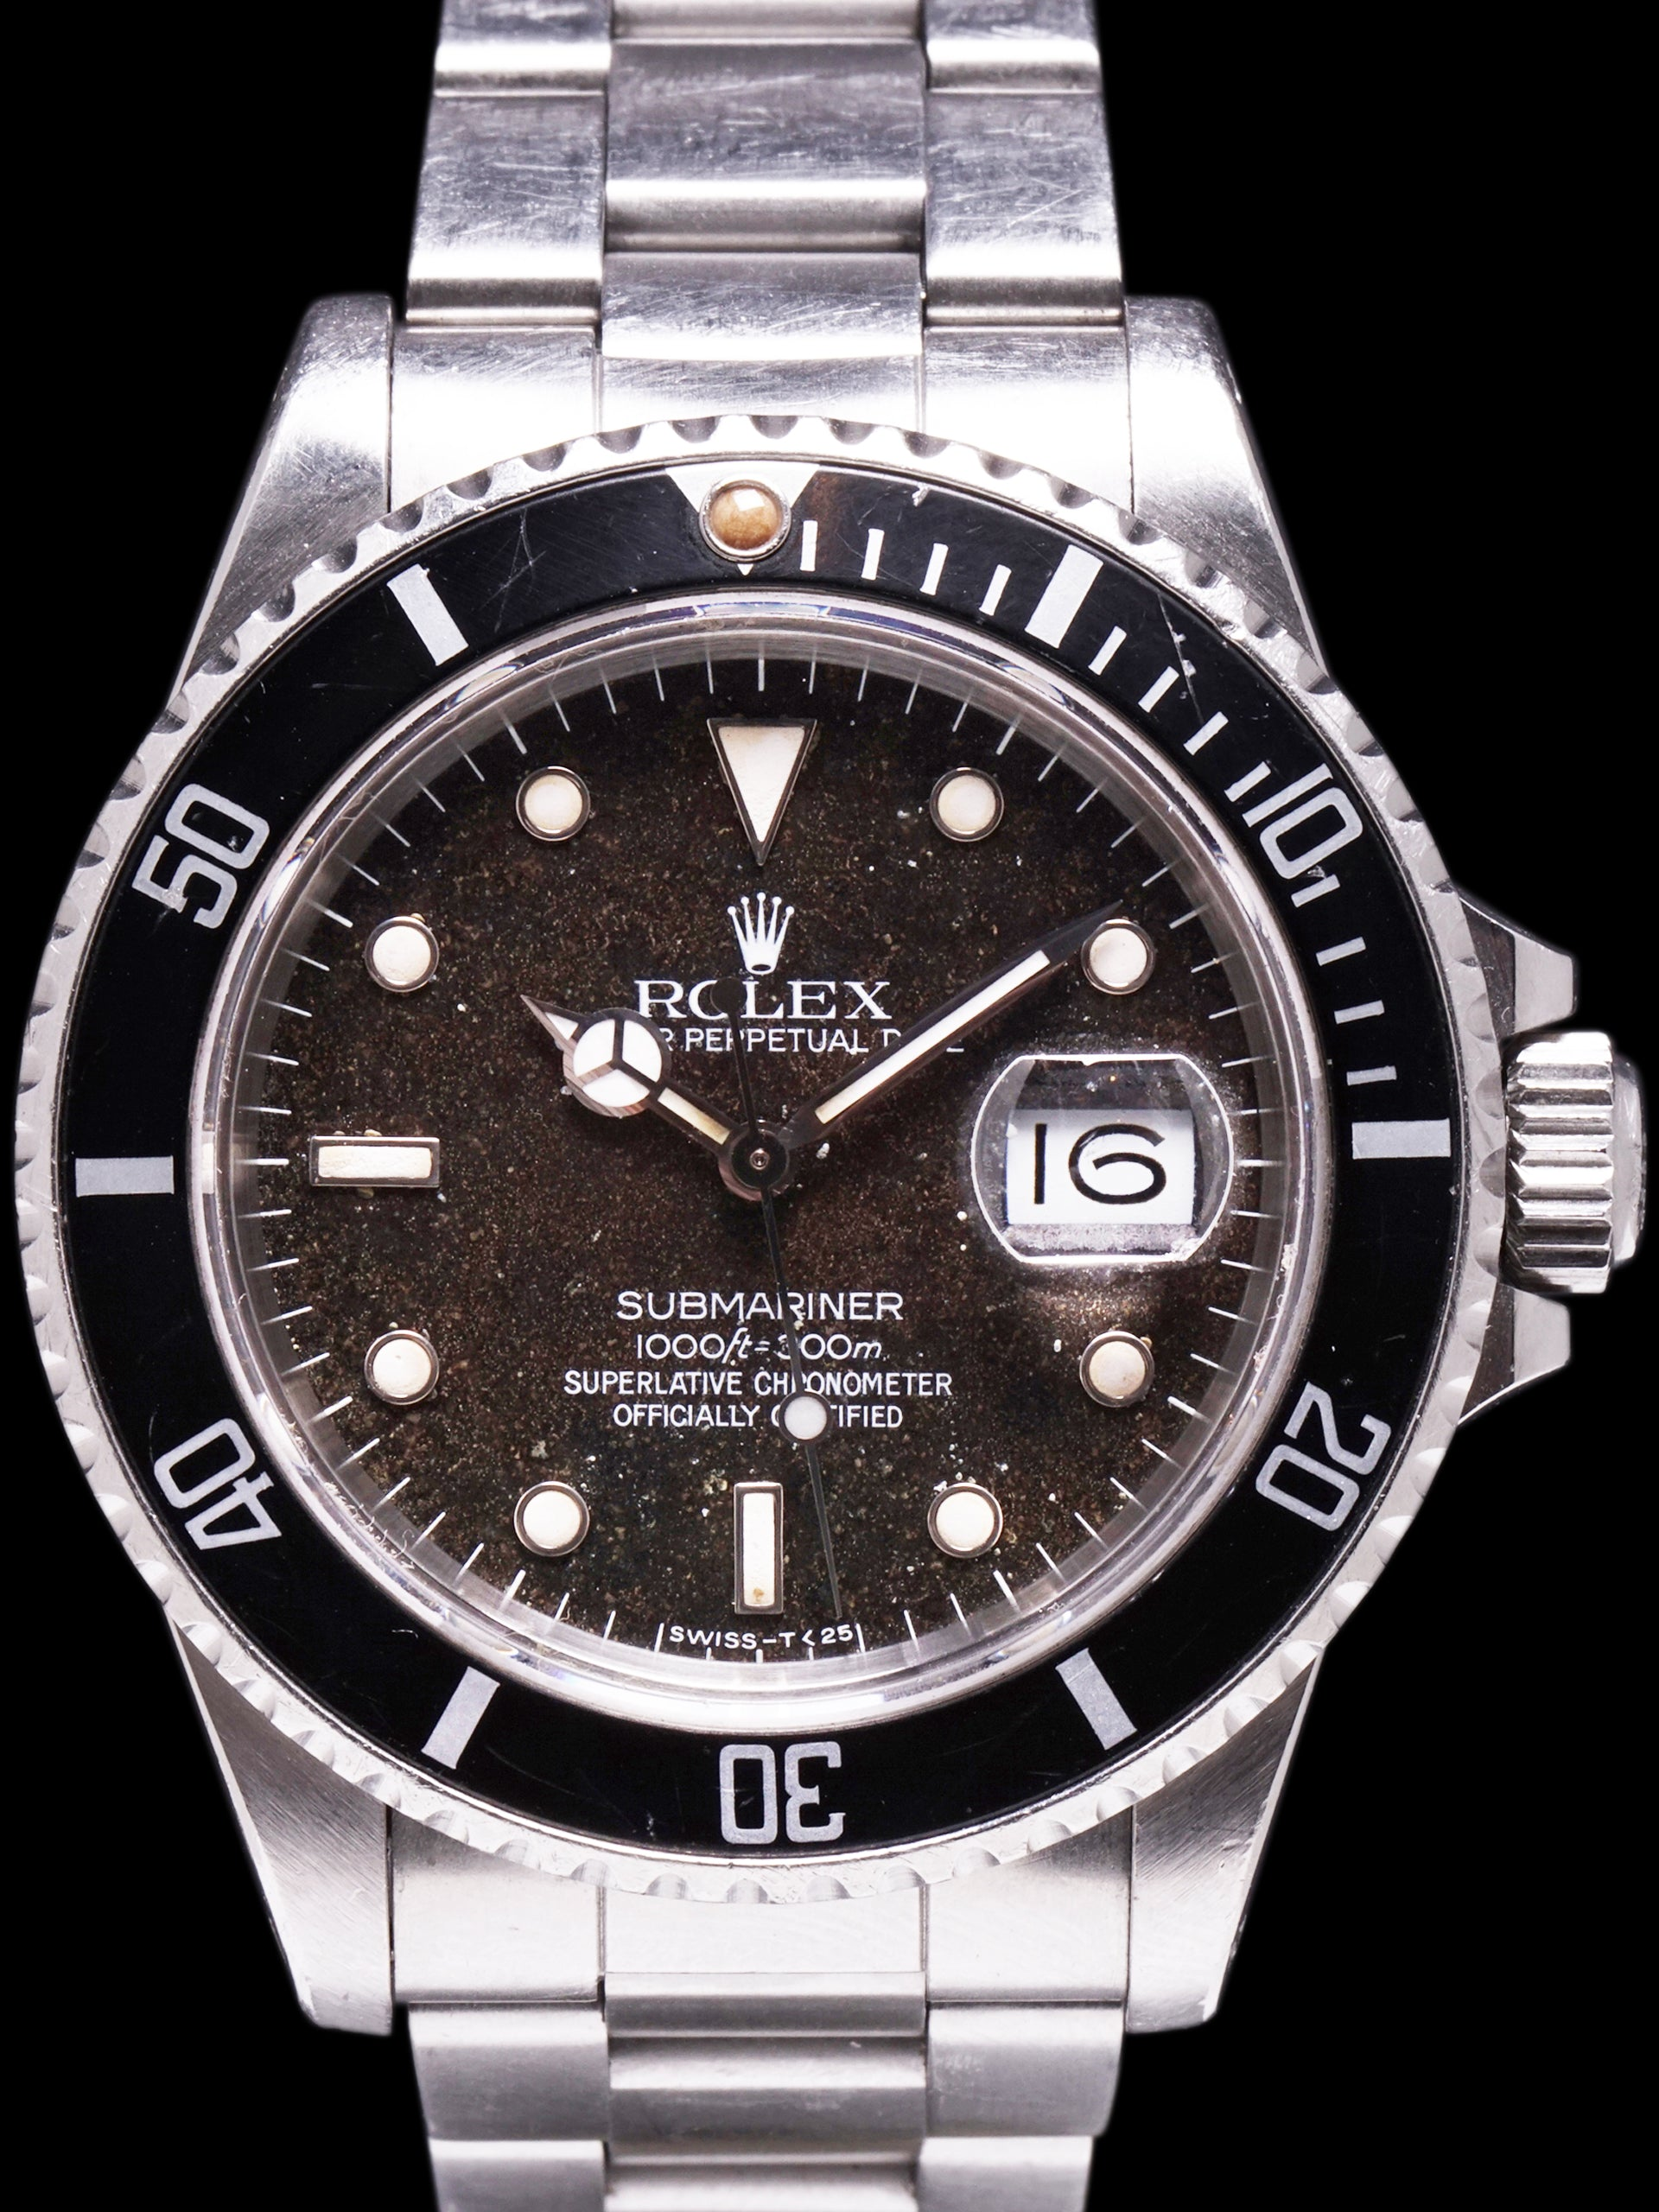 "1987 Rolex Submariner (Ref.16800A) Rare Transitional Model ""Tropical"" w/ Box and Papers"